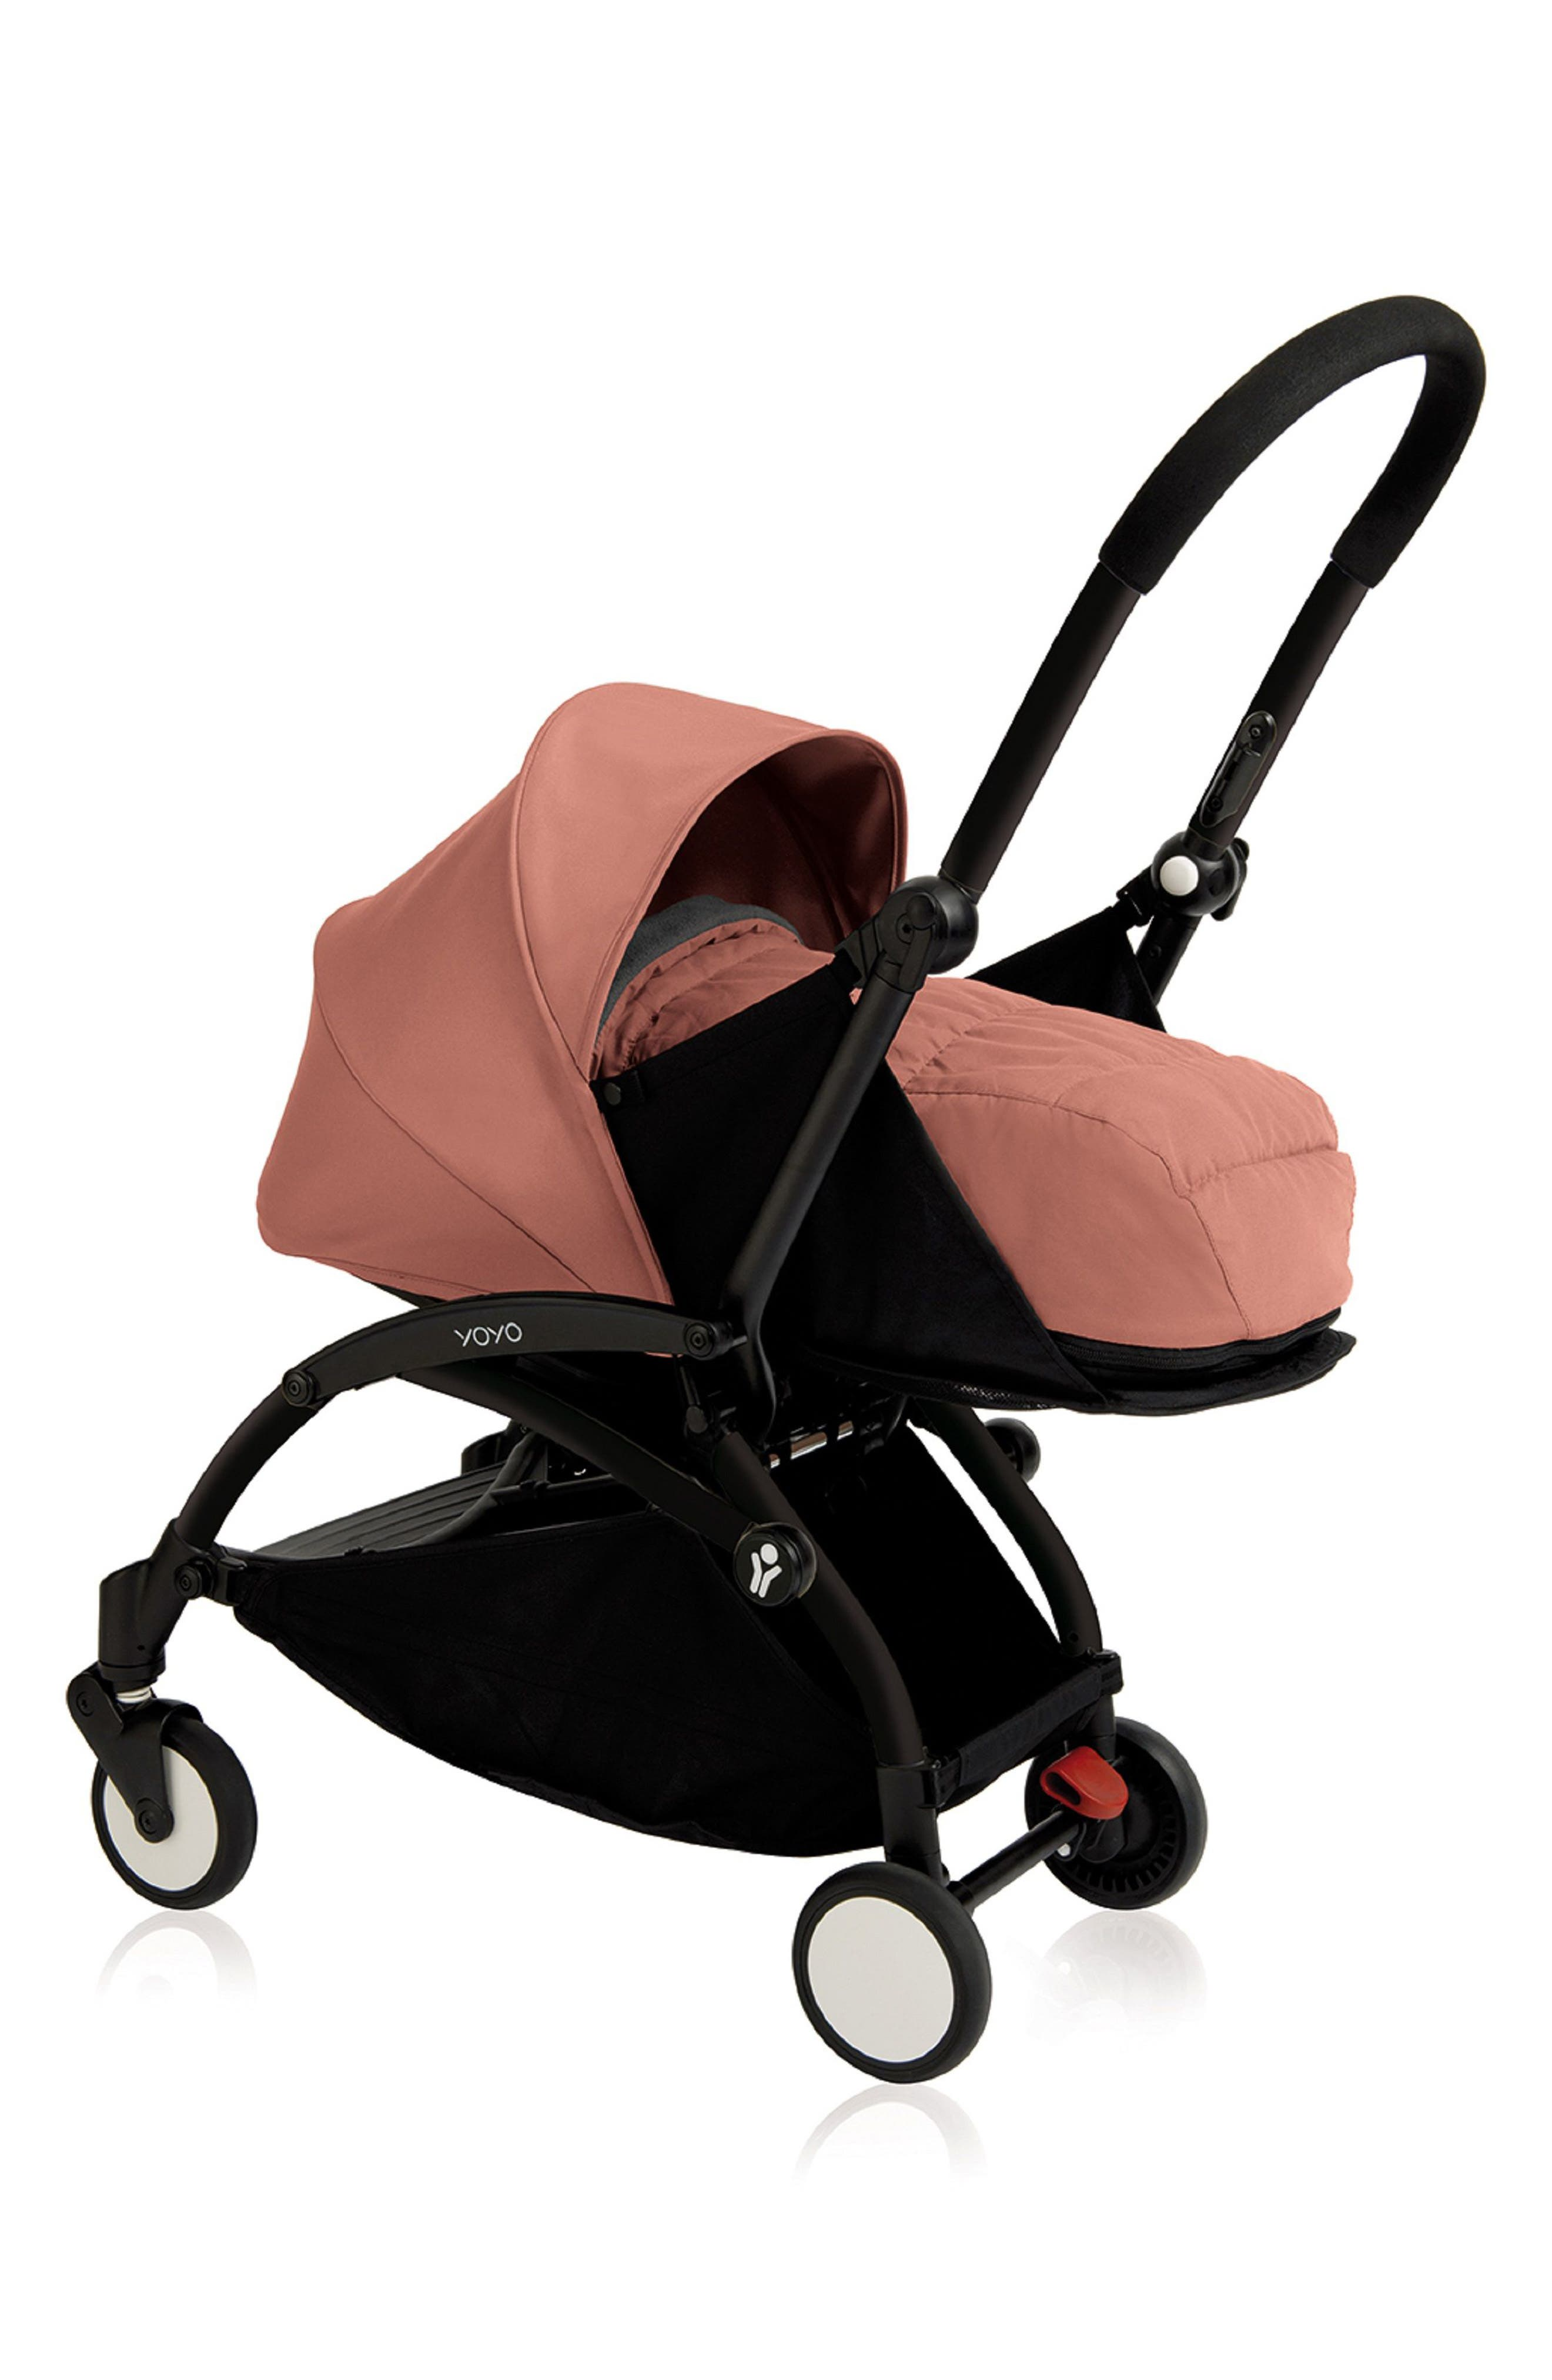 BABYZEN YOYO+ Complete Stroller with Newborn Color Pack Fabric Set,                         Main,                         color, Ginger